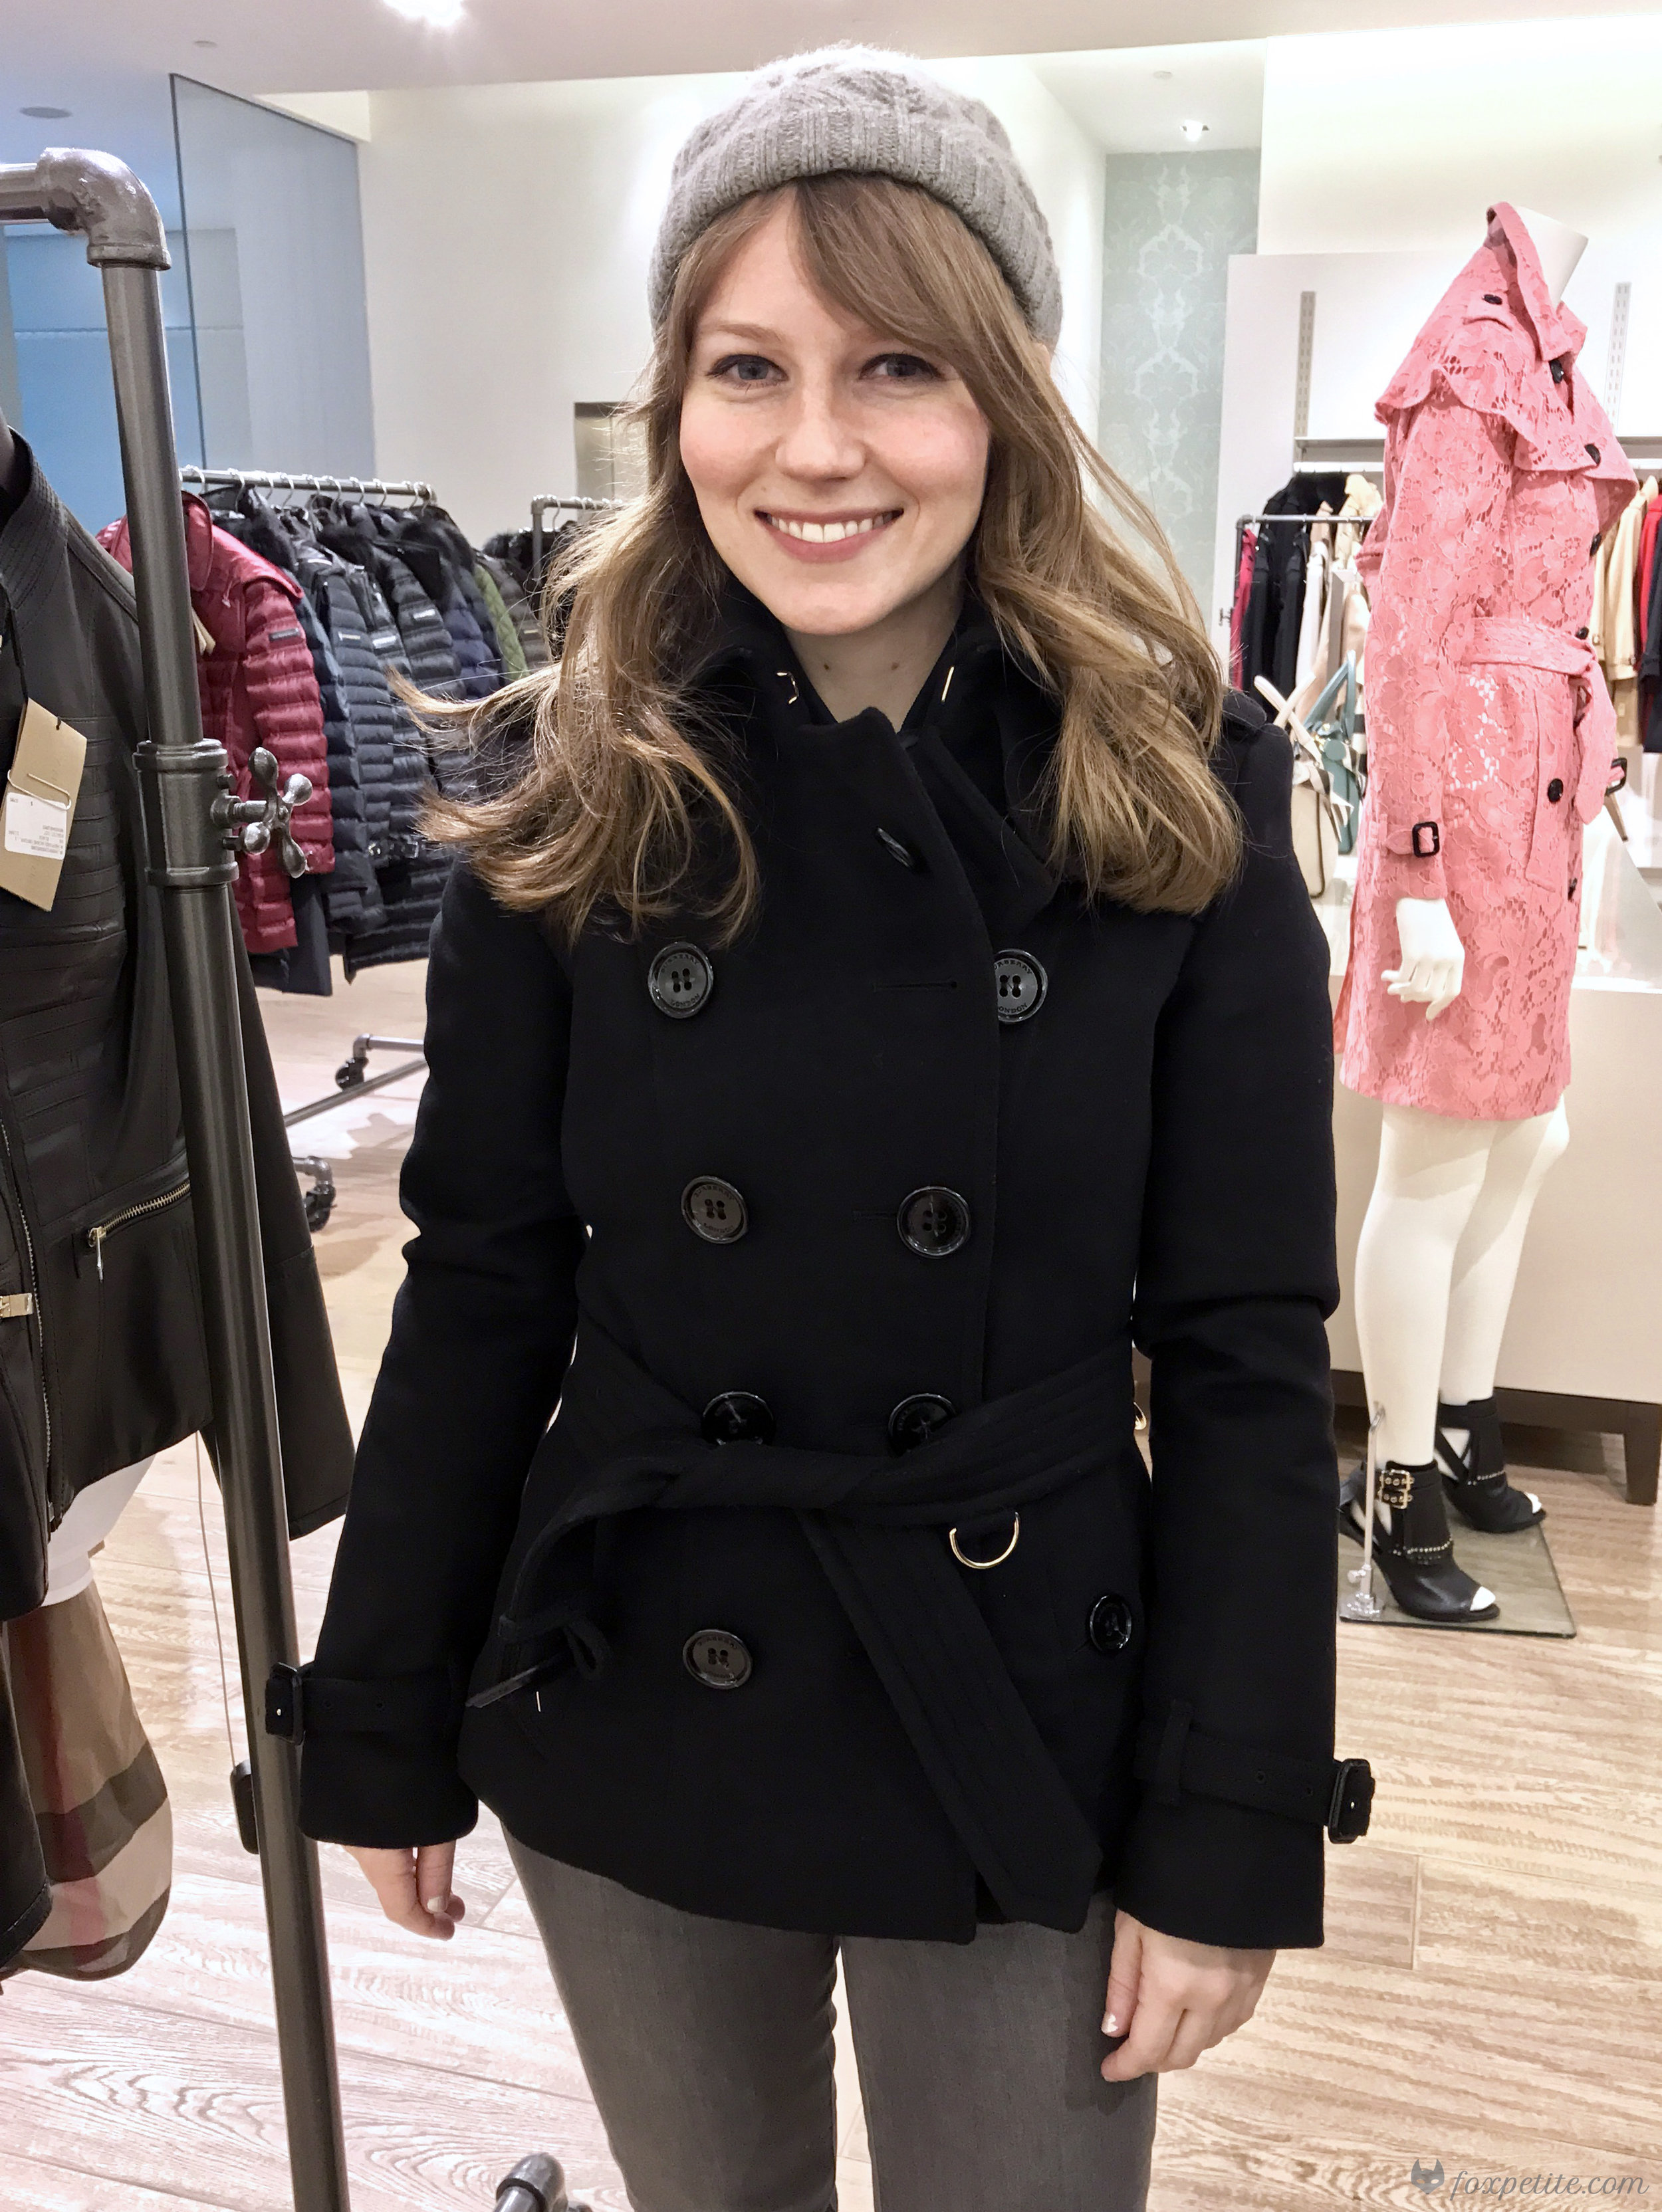 Burberry Sandringham-Fit  Wool Cashmere Trench Jacket (Sandringham fit) in black, USA size 2 ( here )